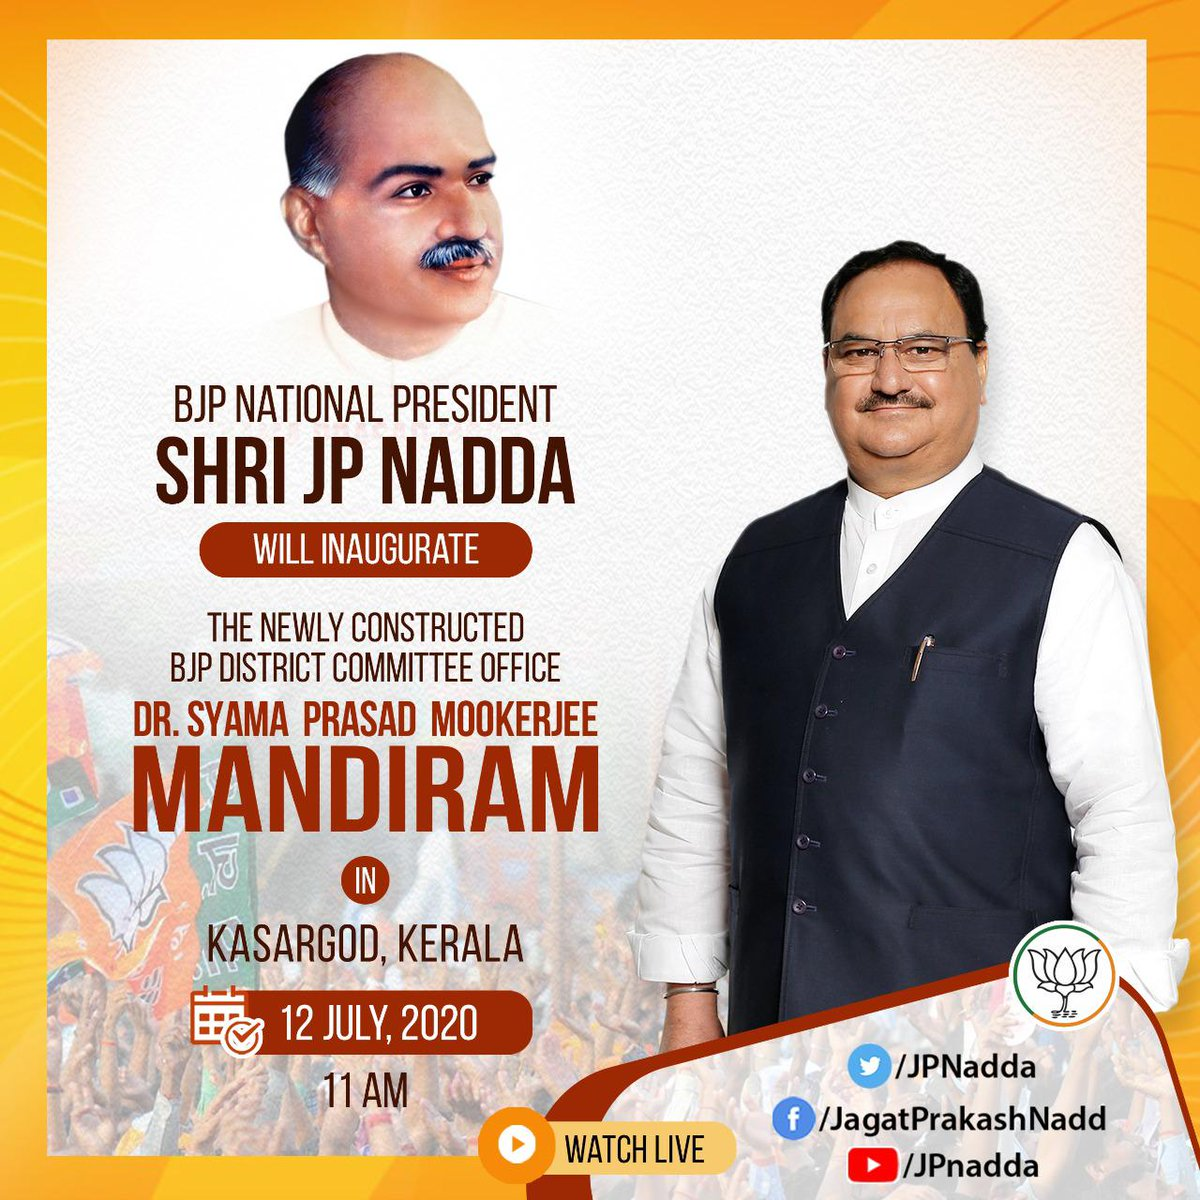 BJP National President Shri @JPNadda Ji will inaugurate the newly constructed BJP district committee office Dr. Syama Prasad Mookerjee Mandiram in Kasargod, Kerala at 11 AM tomorrow.